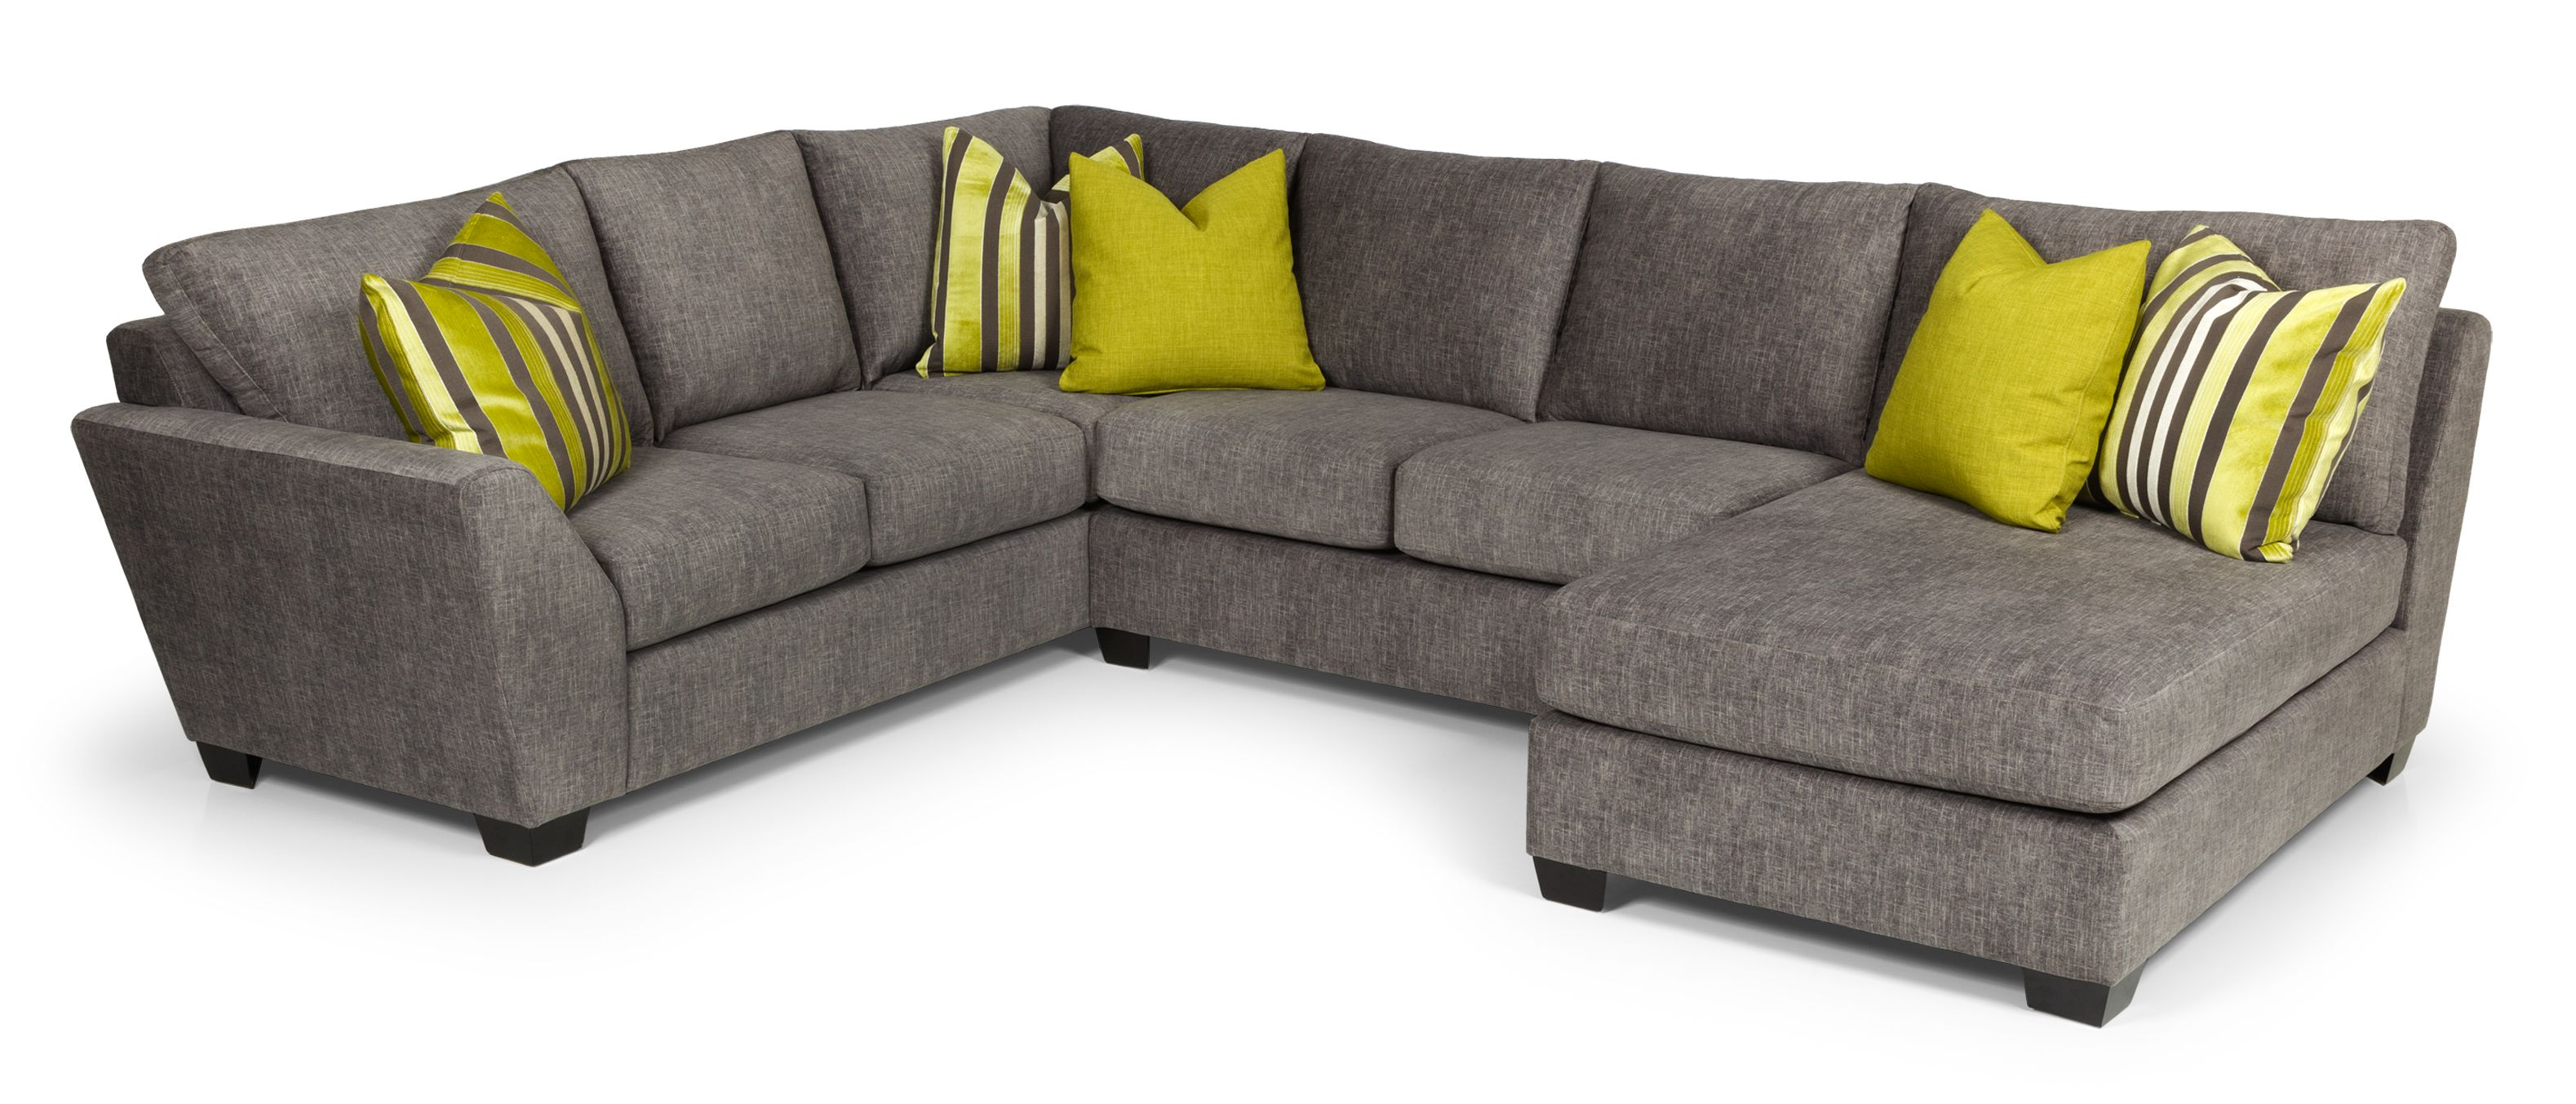 I like how comfy and simple this couch looks i donut know the price